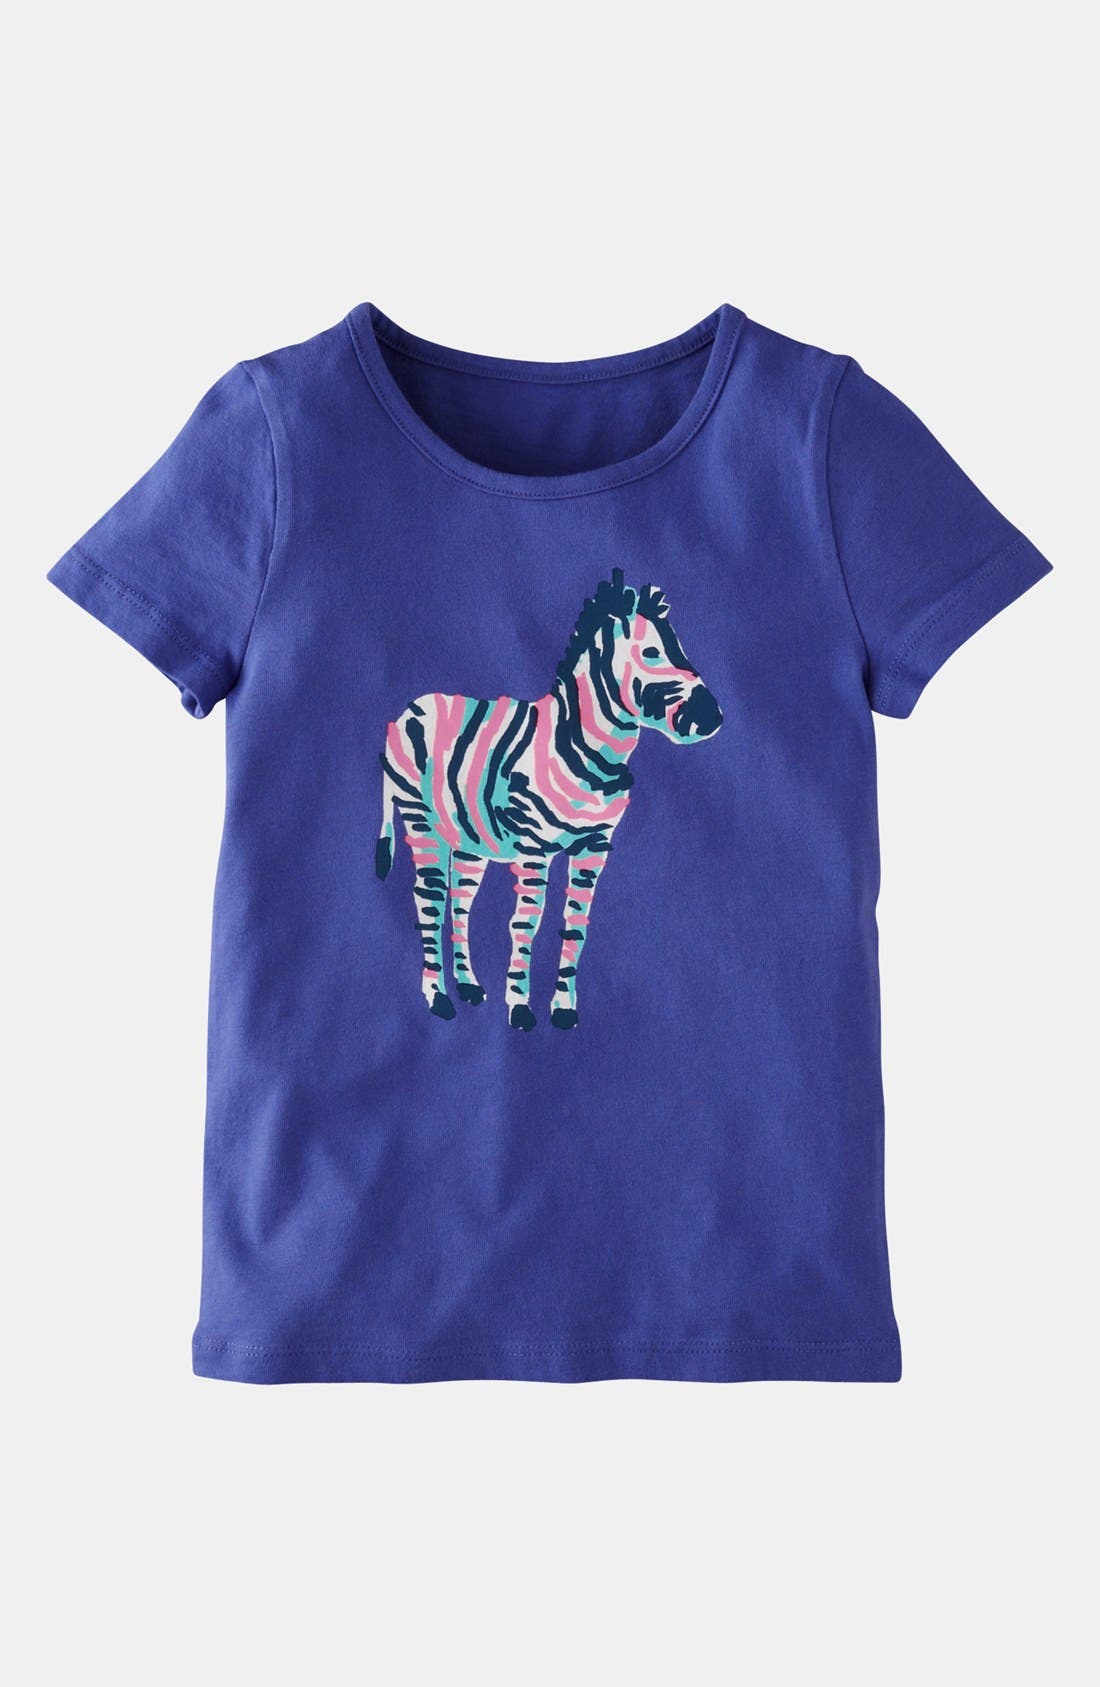 Alternate Image 1 Selected - Mini Boden 'Colorful Carnival' Tee (Little Girls & Big Girls)